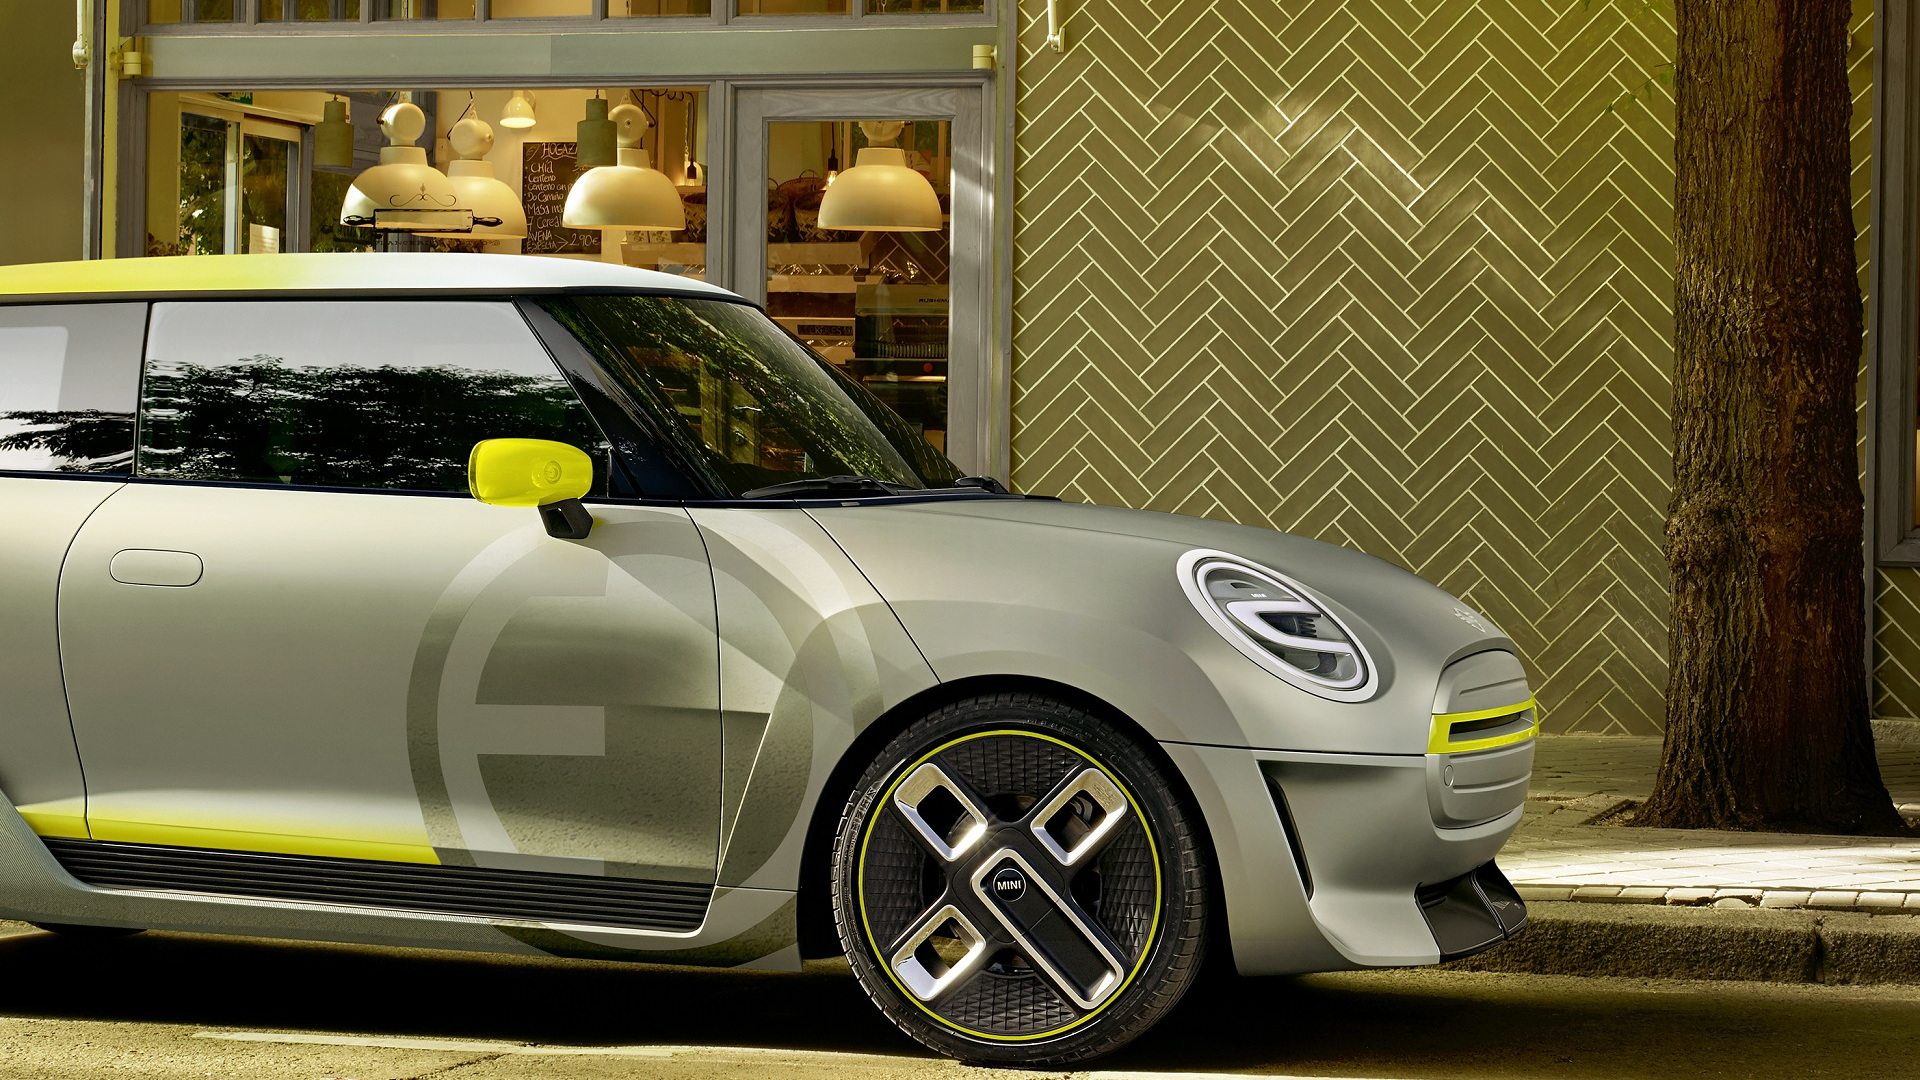 2020 Mini Cooper S E Speedy Electric Hatchback Due For Minis 60th